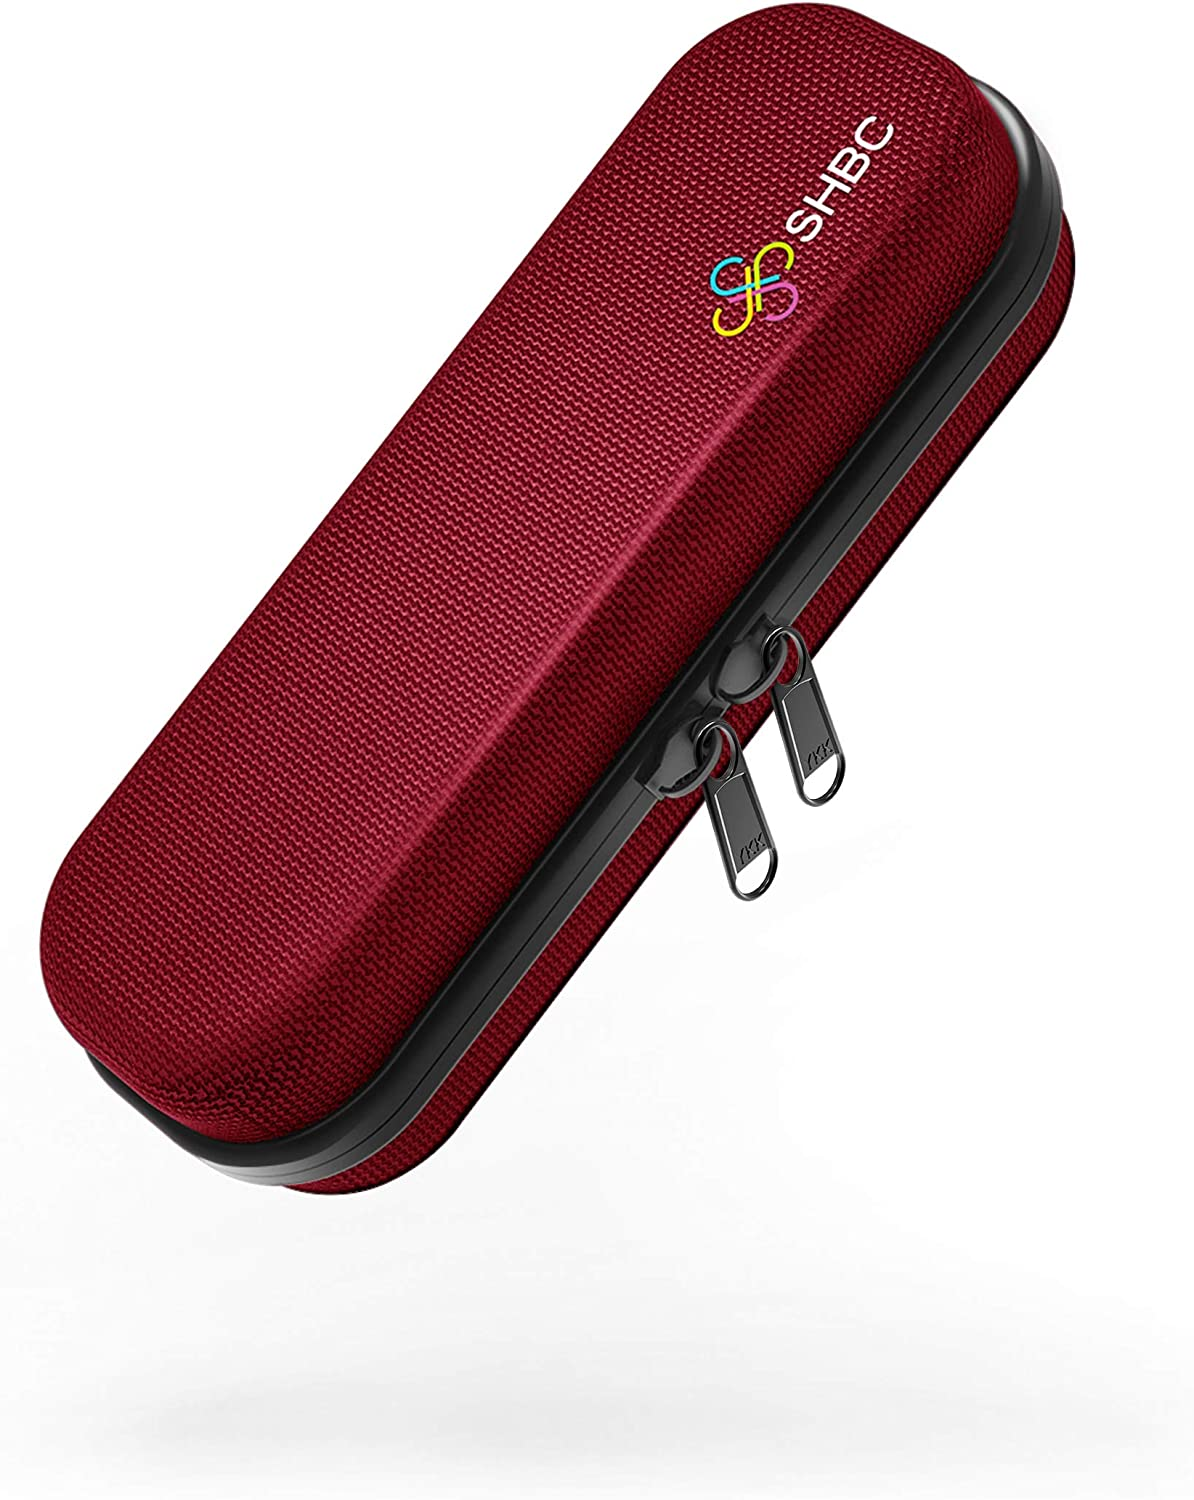 SHBC Compact Insulin Manufacturer OFFicial shop Cooler Ranking TOP4 Travel O for Diabetics Carrying case